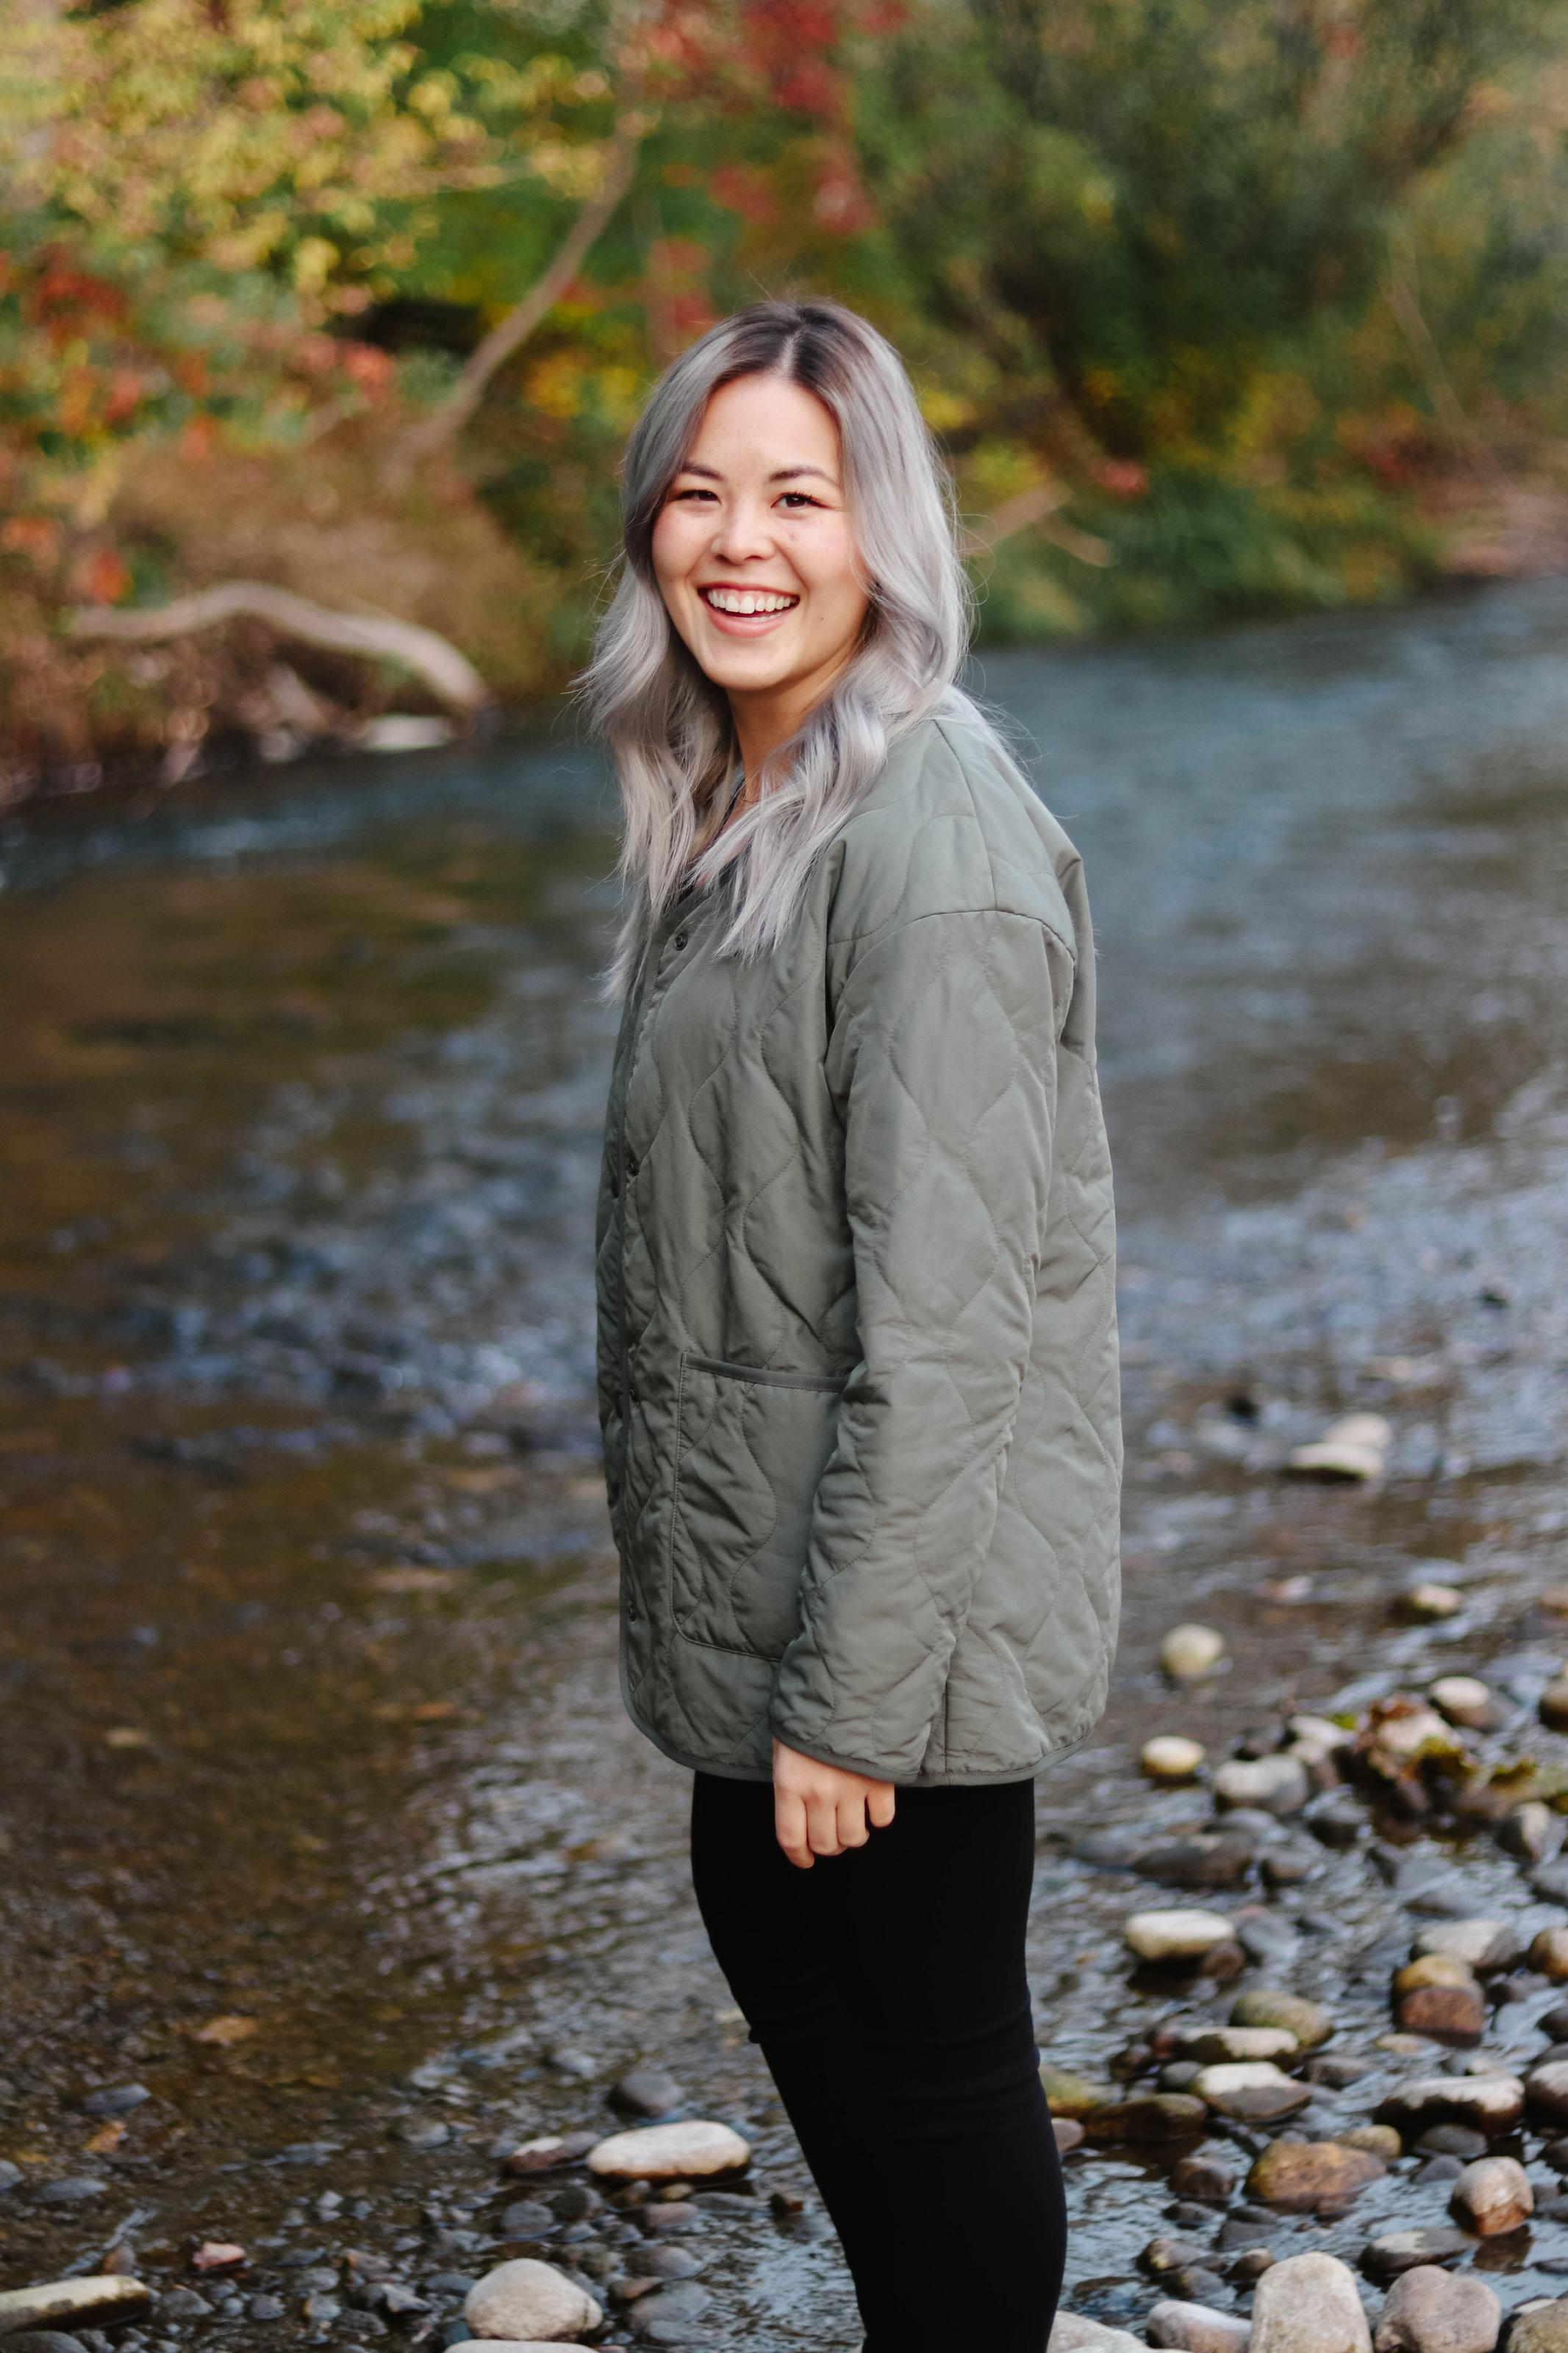 Yuki stands near a river with fall foliage in the background.